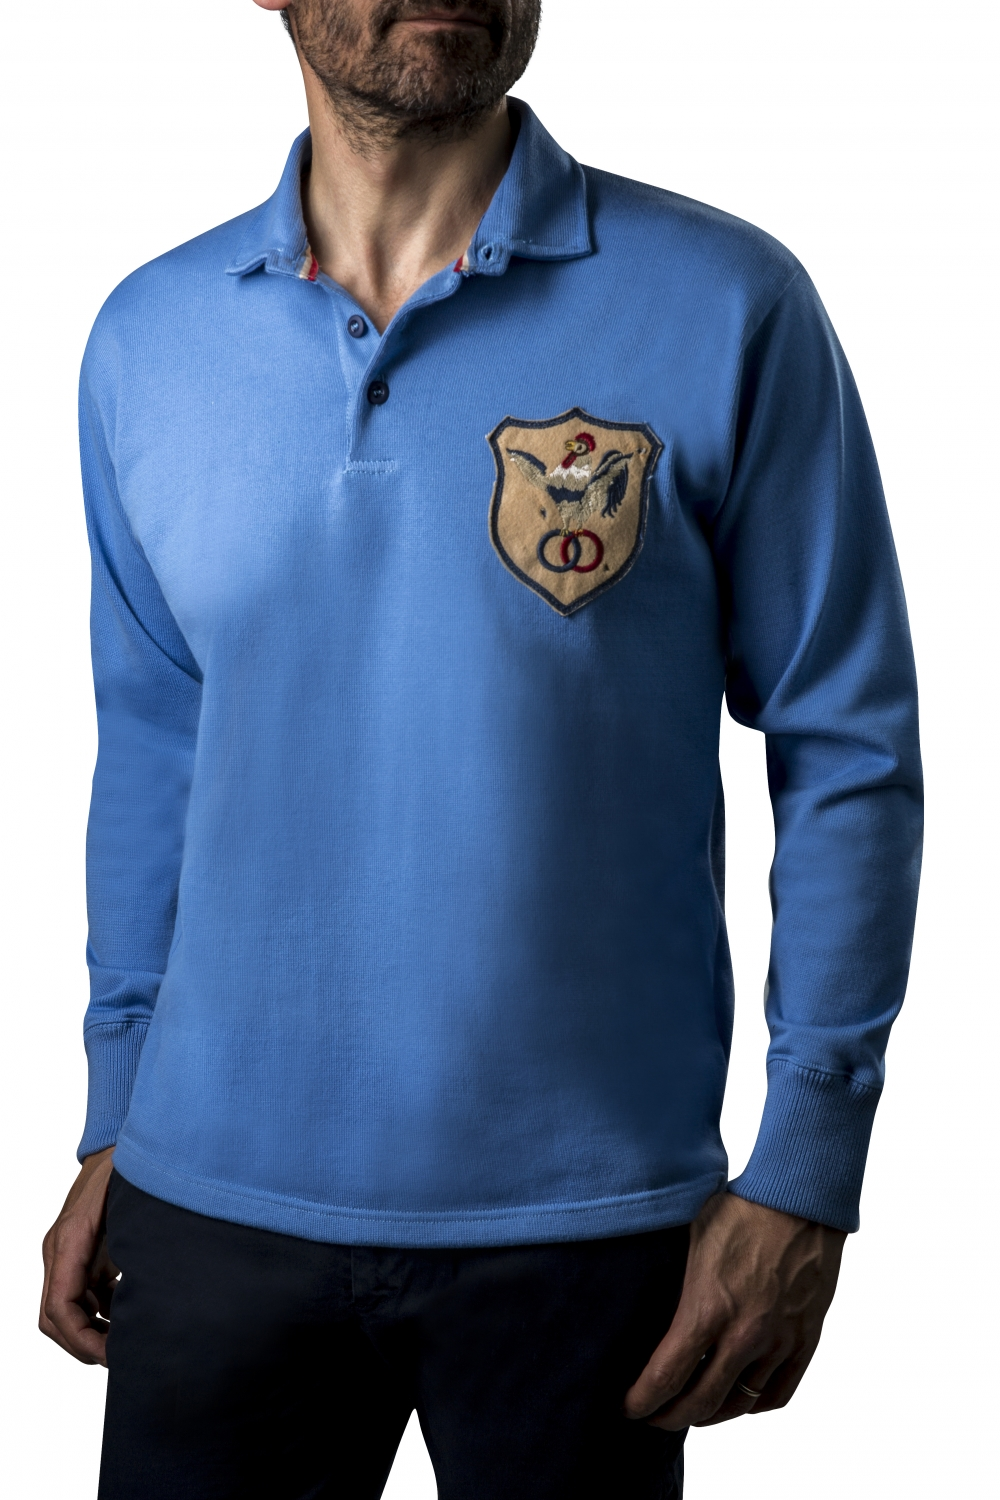 Maillot Rugby XV de France 1922